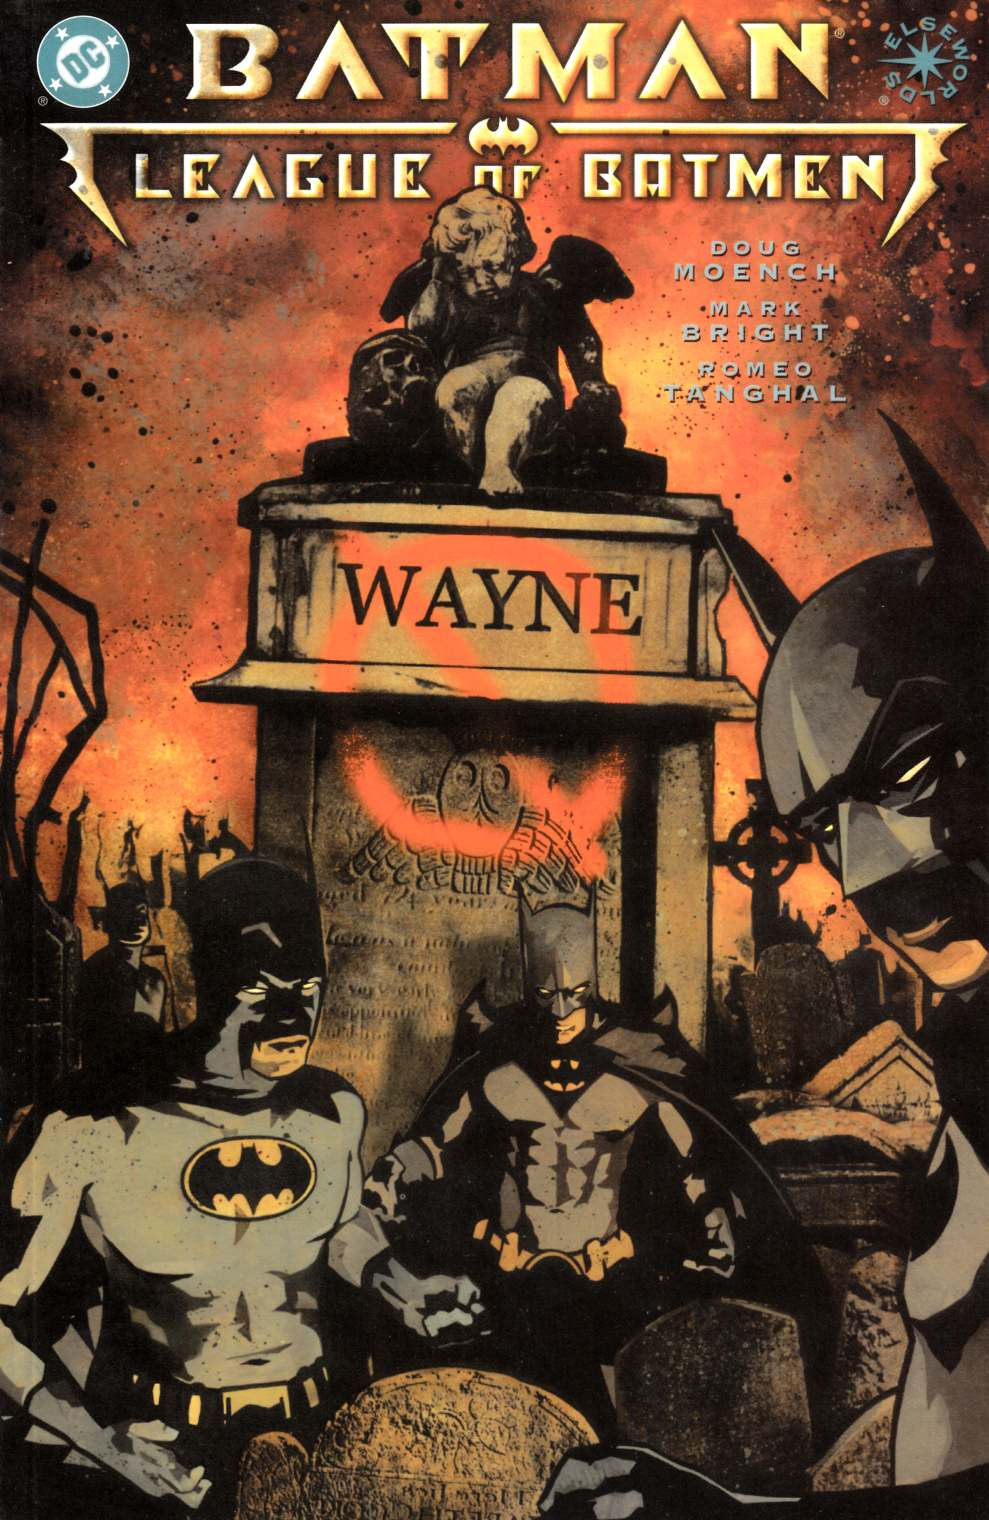 Batman League of Batmen #1 Near Mint (9.4) [DC Comic] THUMBNAIL